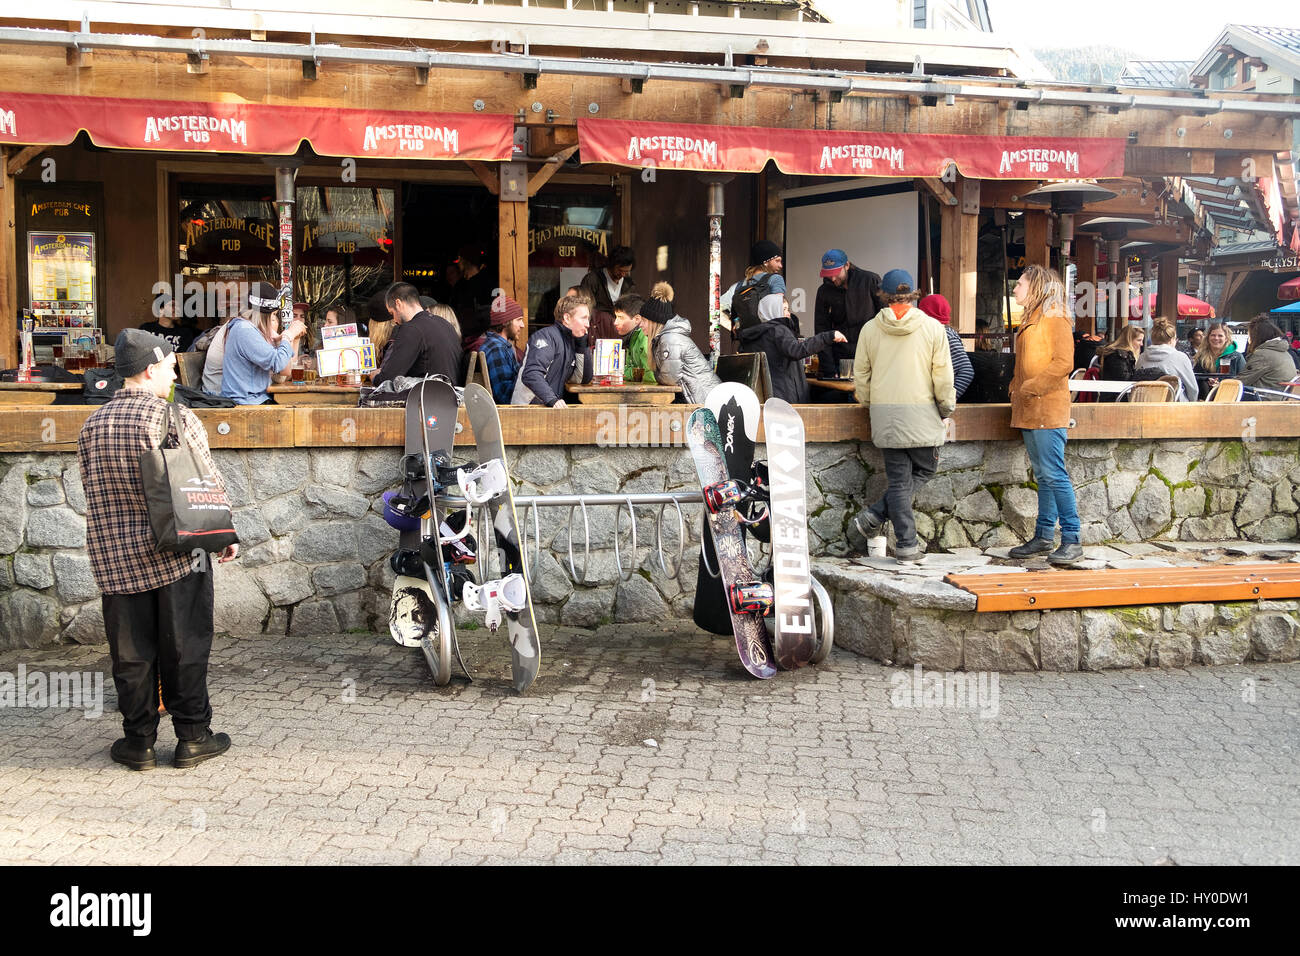 Tourists eat on the patio of a sidewalk cafe in the Whistler ski resort.  Whistler BC, Canada. - Stock Image